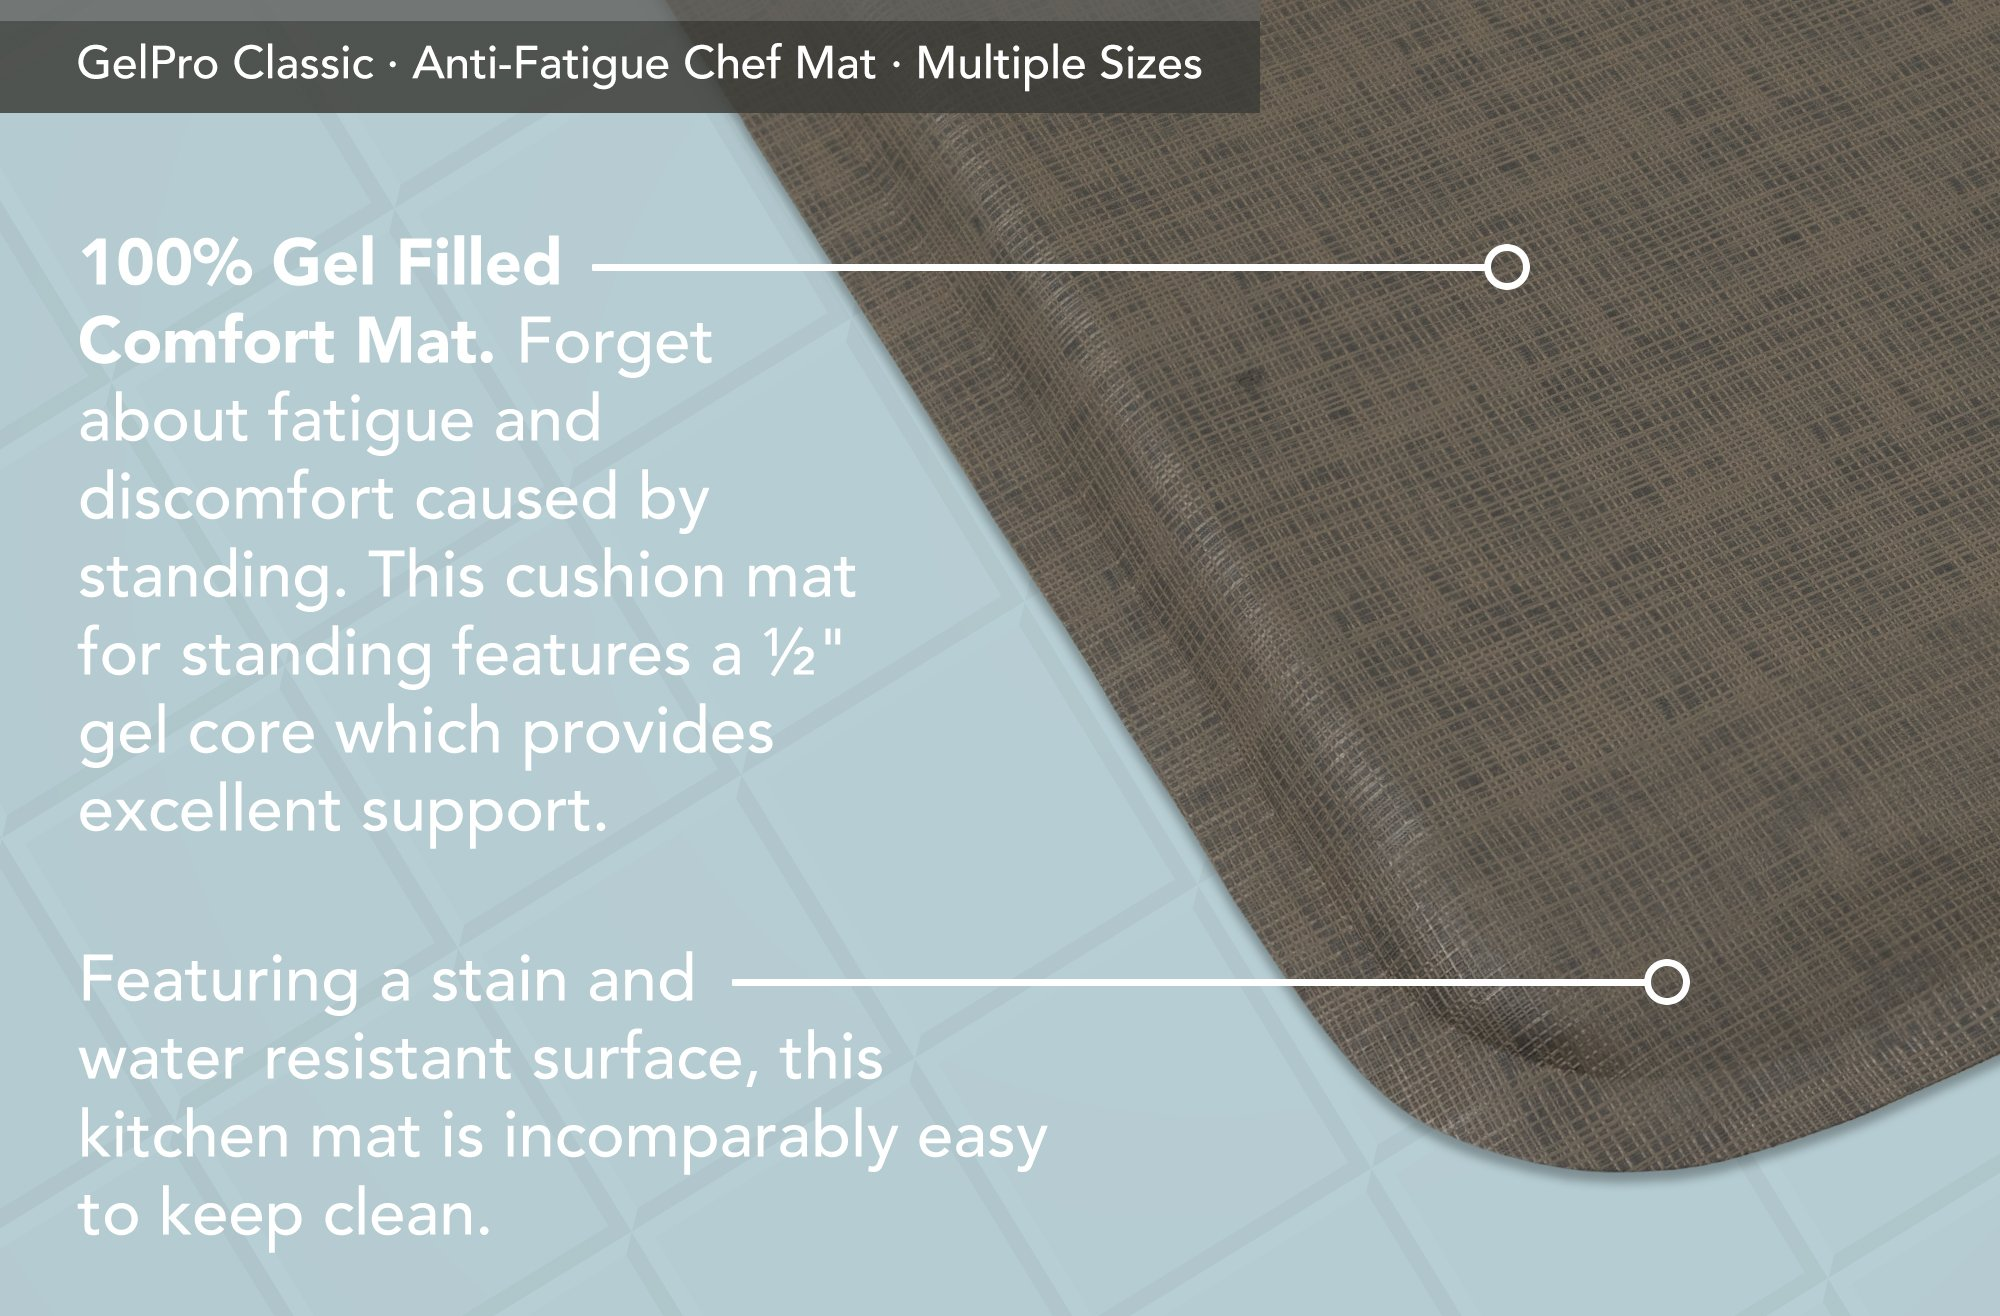 "GelPro Classic Anti-Fatigue Kitchen Comfort Chef Floor Mat, 20x48"", Linen Granite Gray Stain Resistant Surface with 1/2"" Gel Core for Health and Wellness by GelPro (Image #4)"